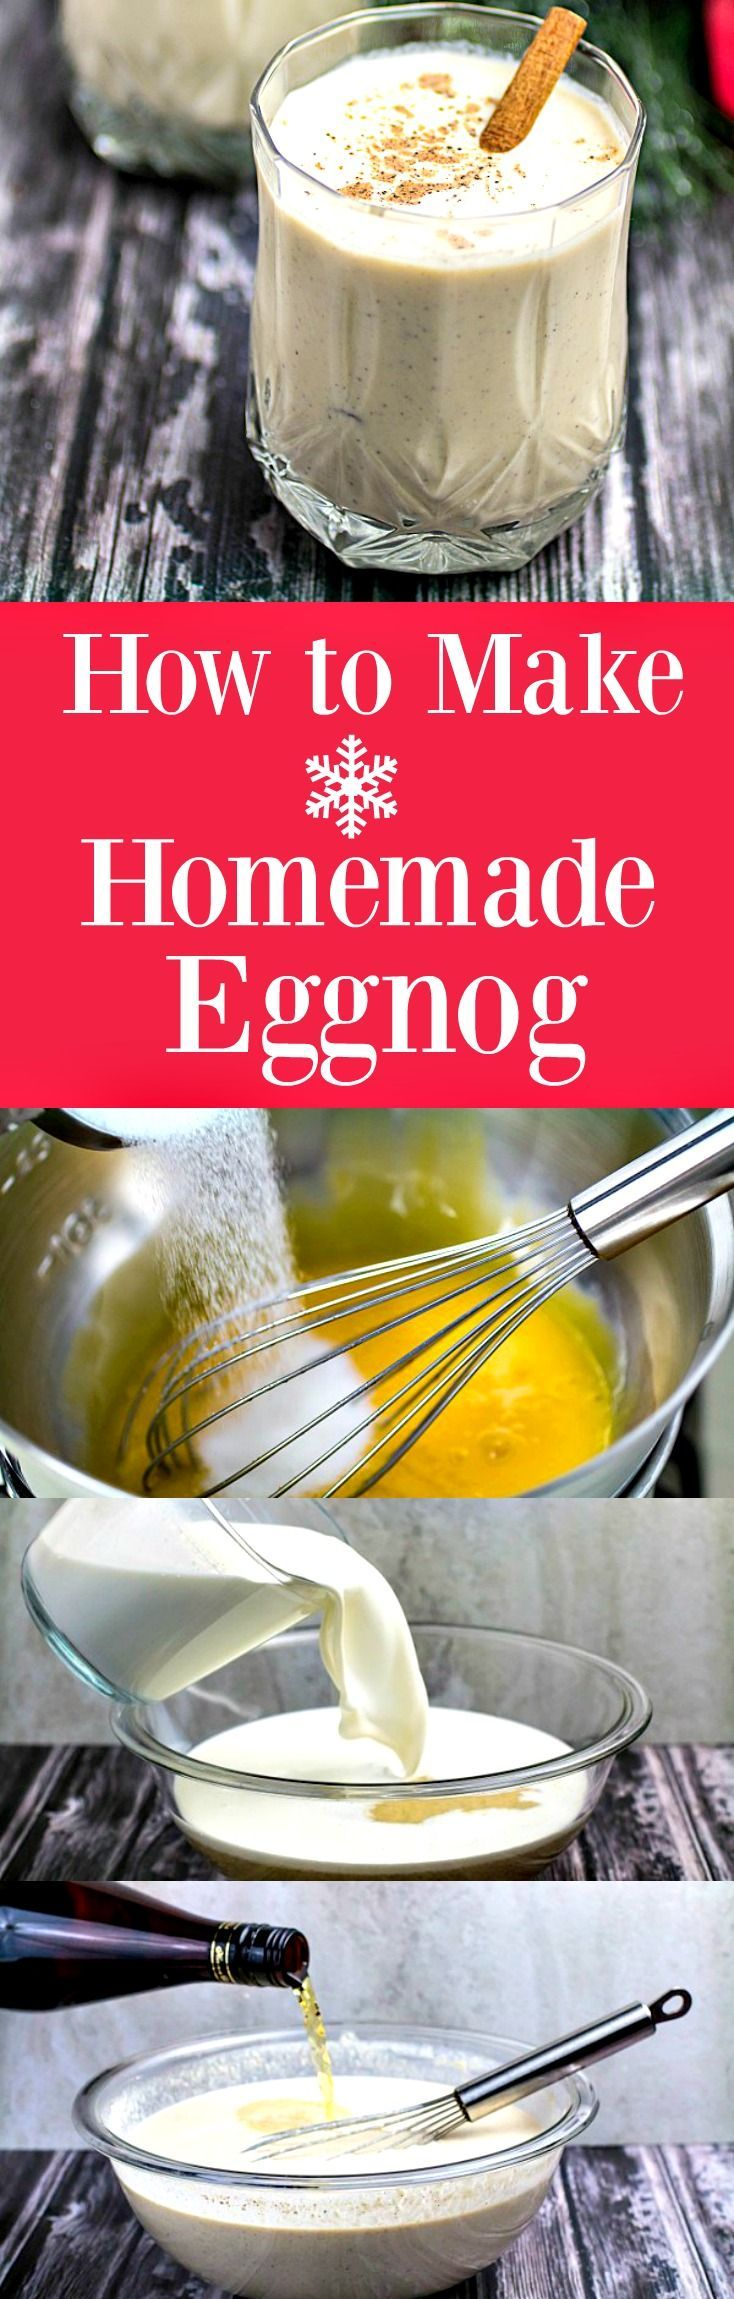 Click this pin to learn how to make homemade eggnog! Repin to save recipe instructions for later! Creamy, sweet, and thick, this traditional holiday eggnog is one step away from being a custard dessert. Cinnamon, nutmeg, and vanilla combine perfectly with the smooth texture and the optional kick of rum. Why settle for store-bought when it's easy and fun to learn how to make homemade eggnog! It's also gluten free!